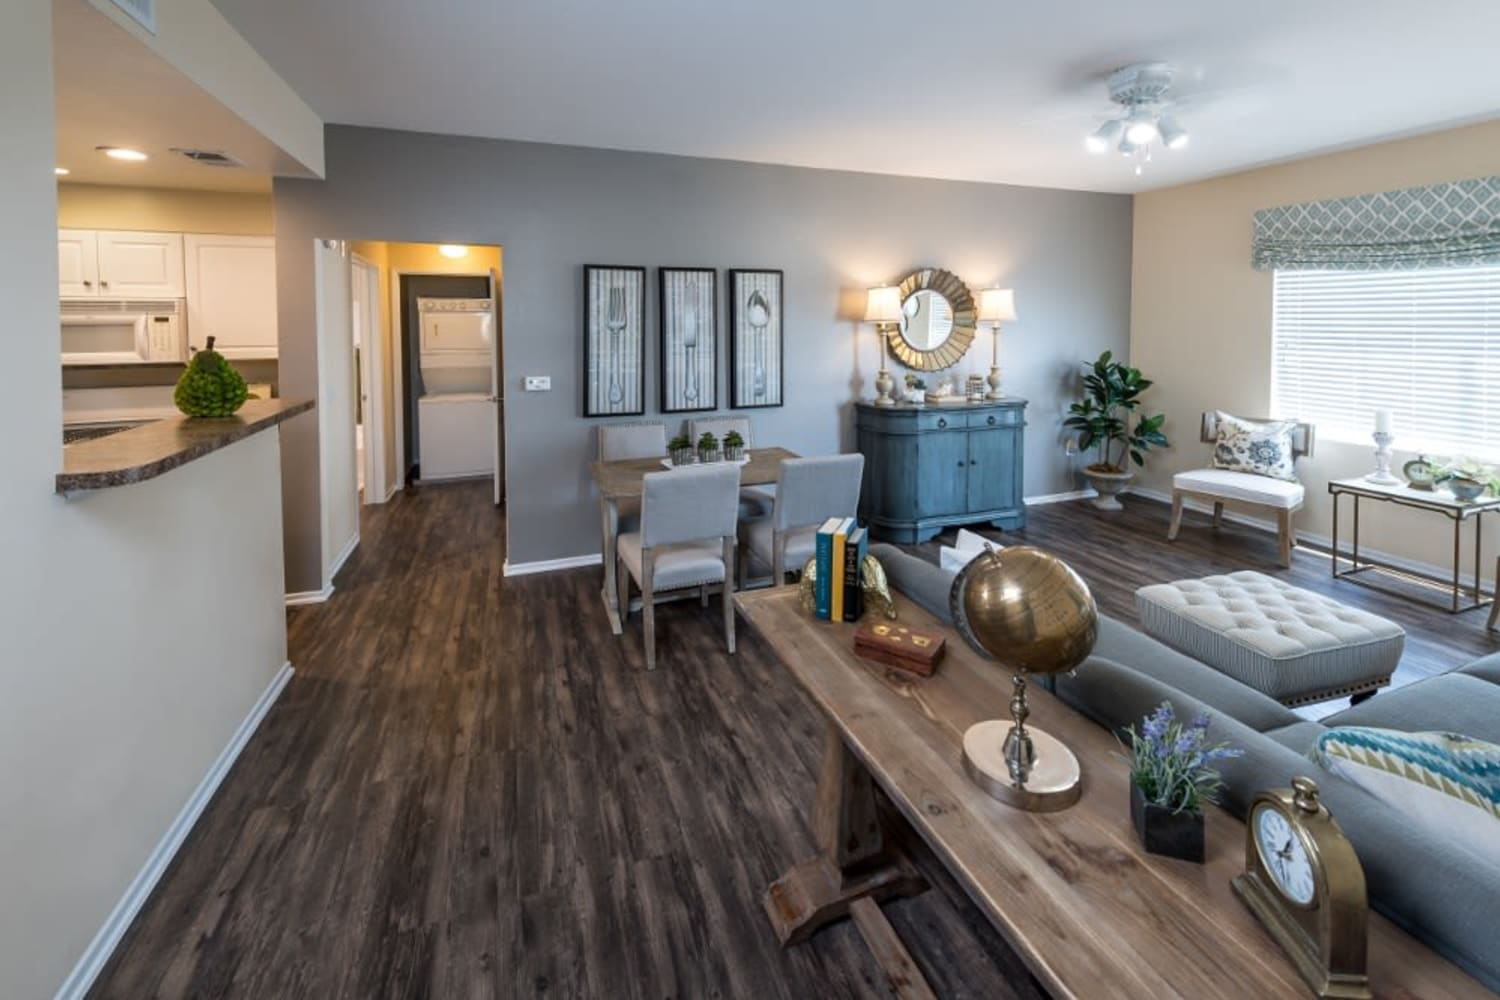 Enjoy hardwood floors at Village on the Green in Rancho Cucamonga, California